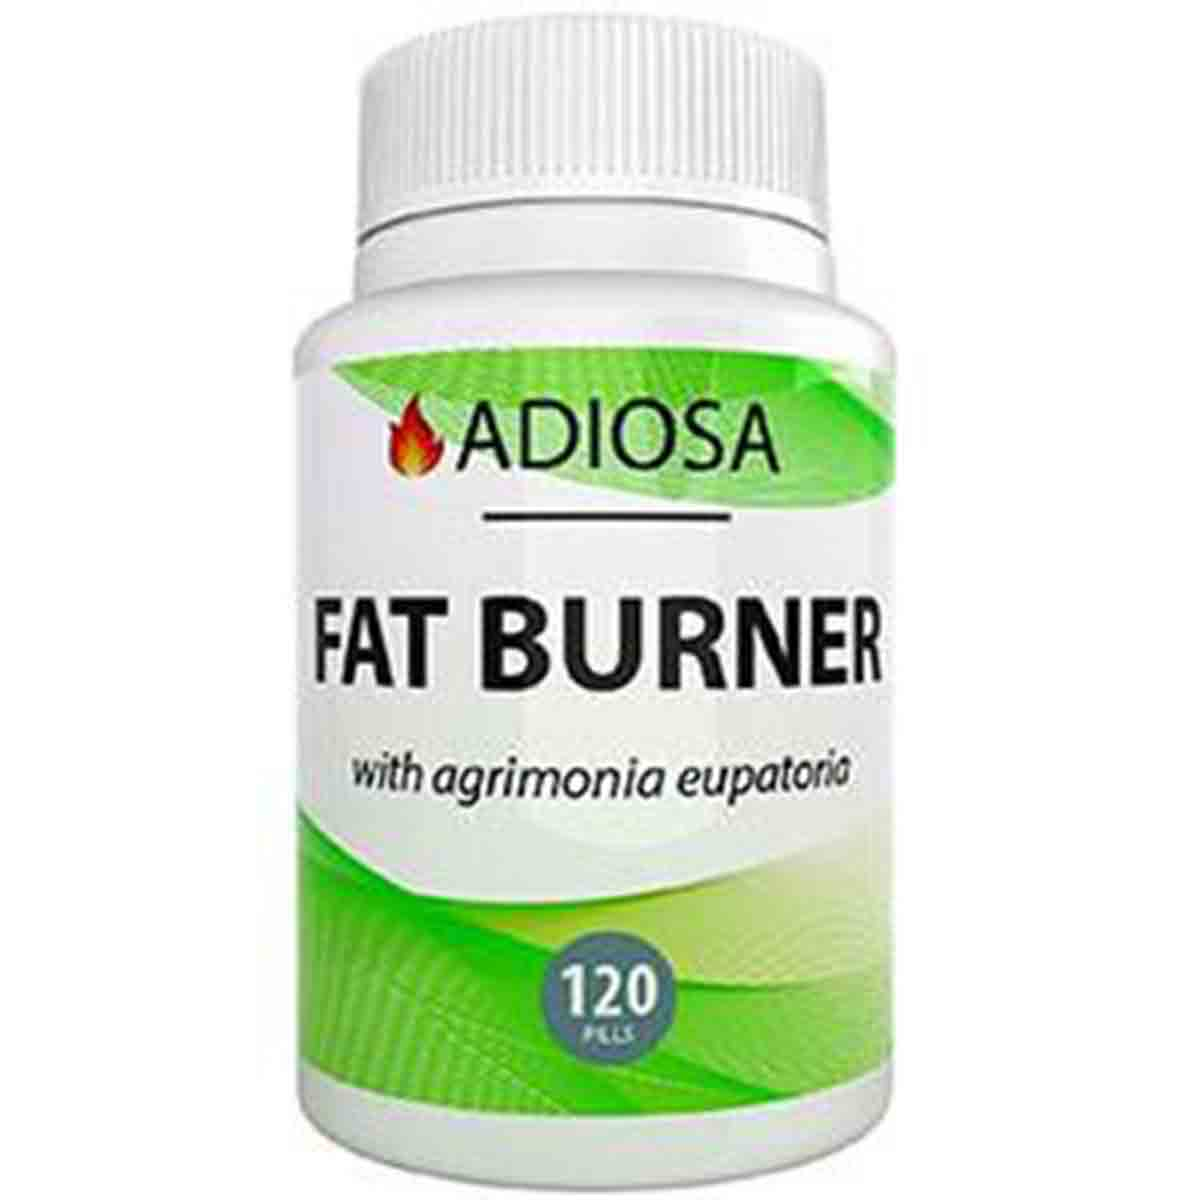 Adiosa Fat Burner